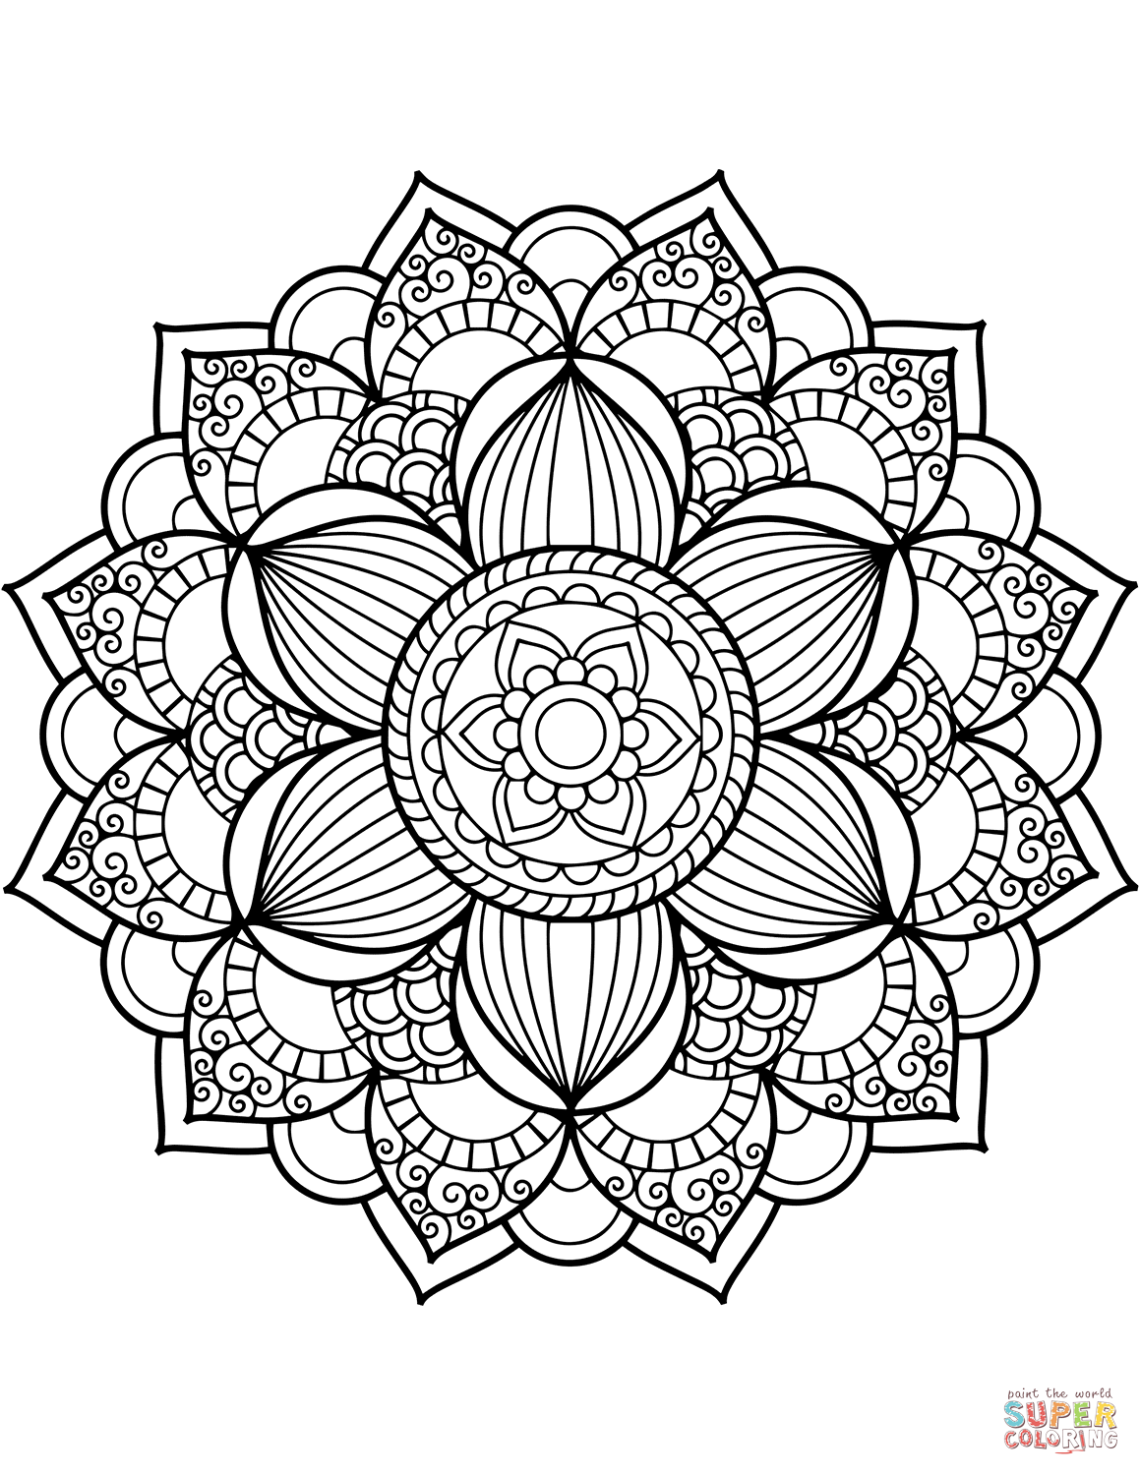 Flower Mandala coloring page | Free Printable Coloring Pages | free printable mandala coloring pages for adults easy